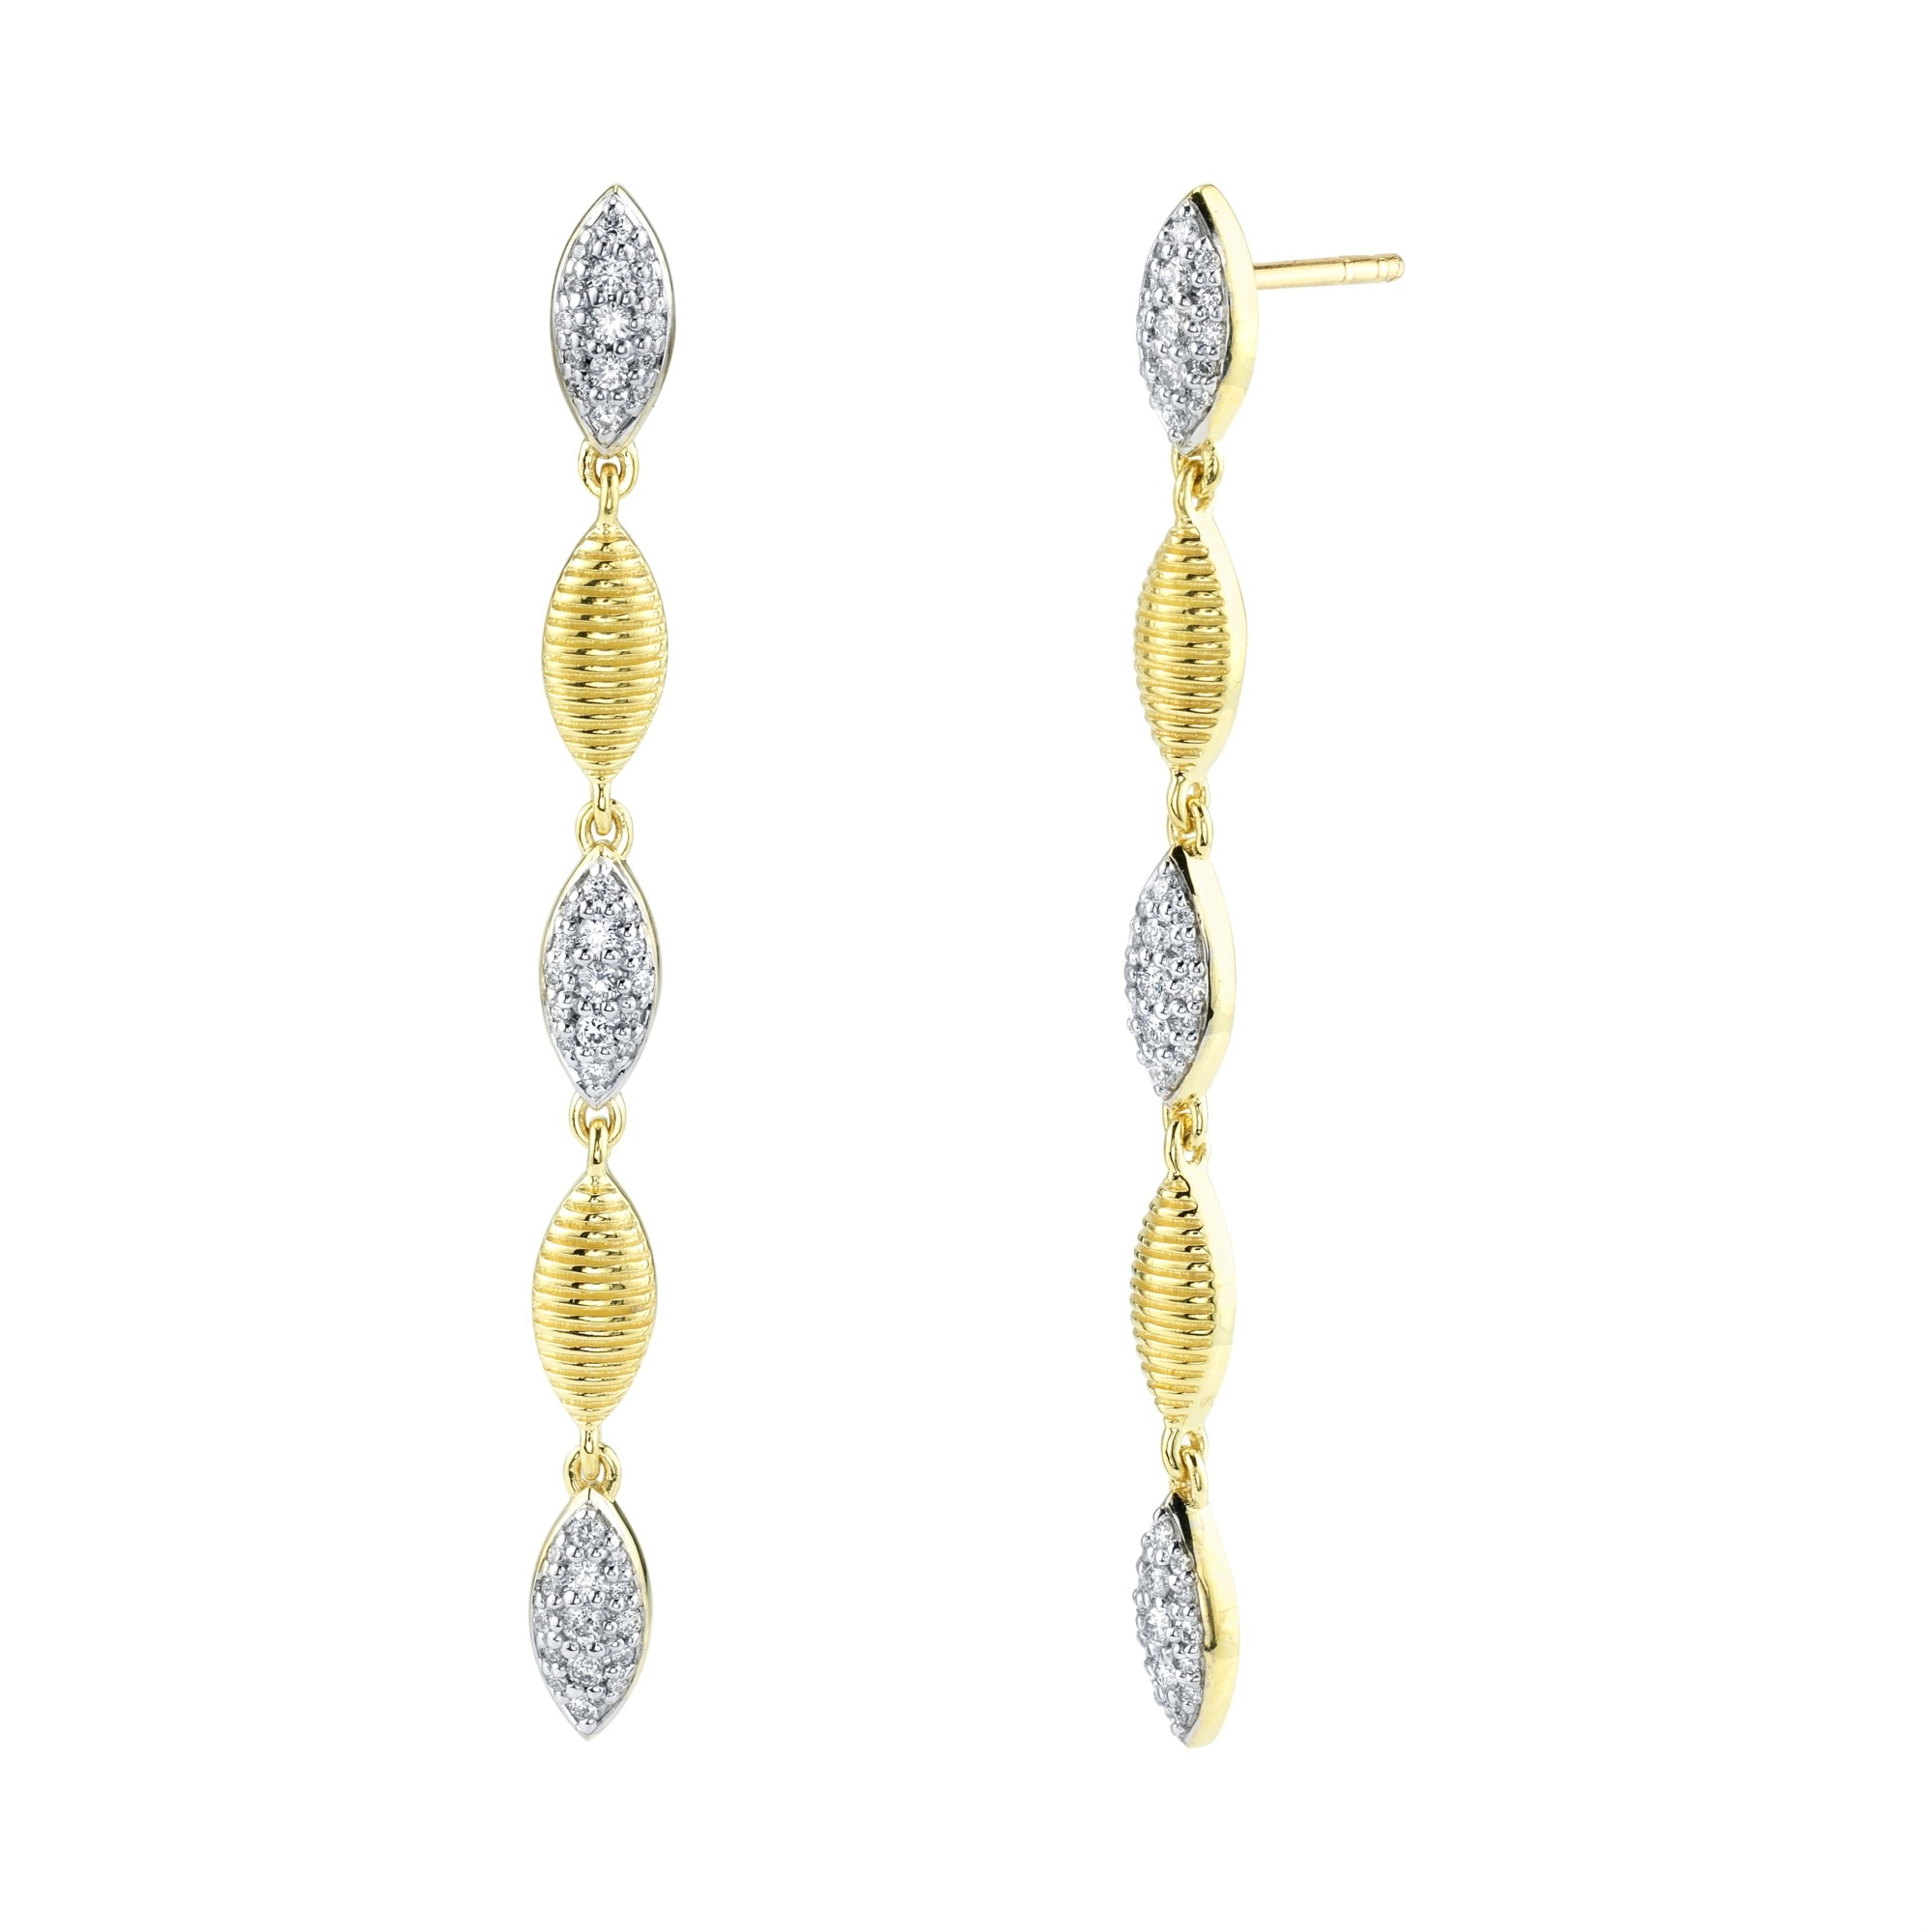 Sloane Street 18K Yellow Gold .37cts  Diamonds Gold Earrings with Stones E005F-WDCB-Y